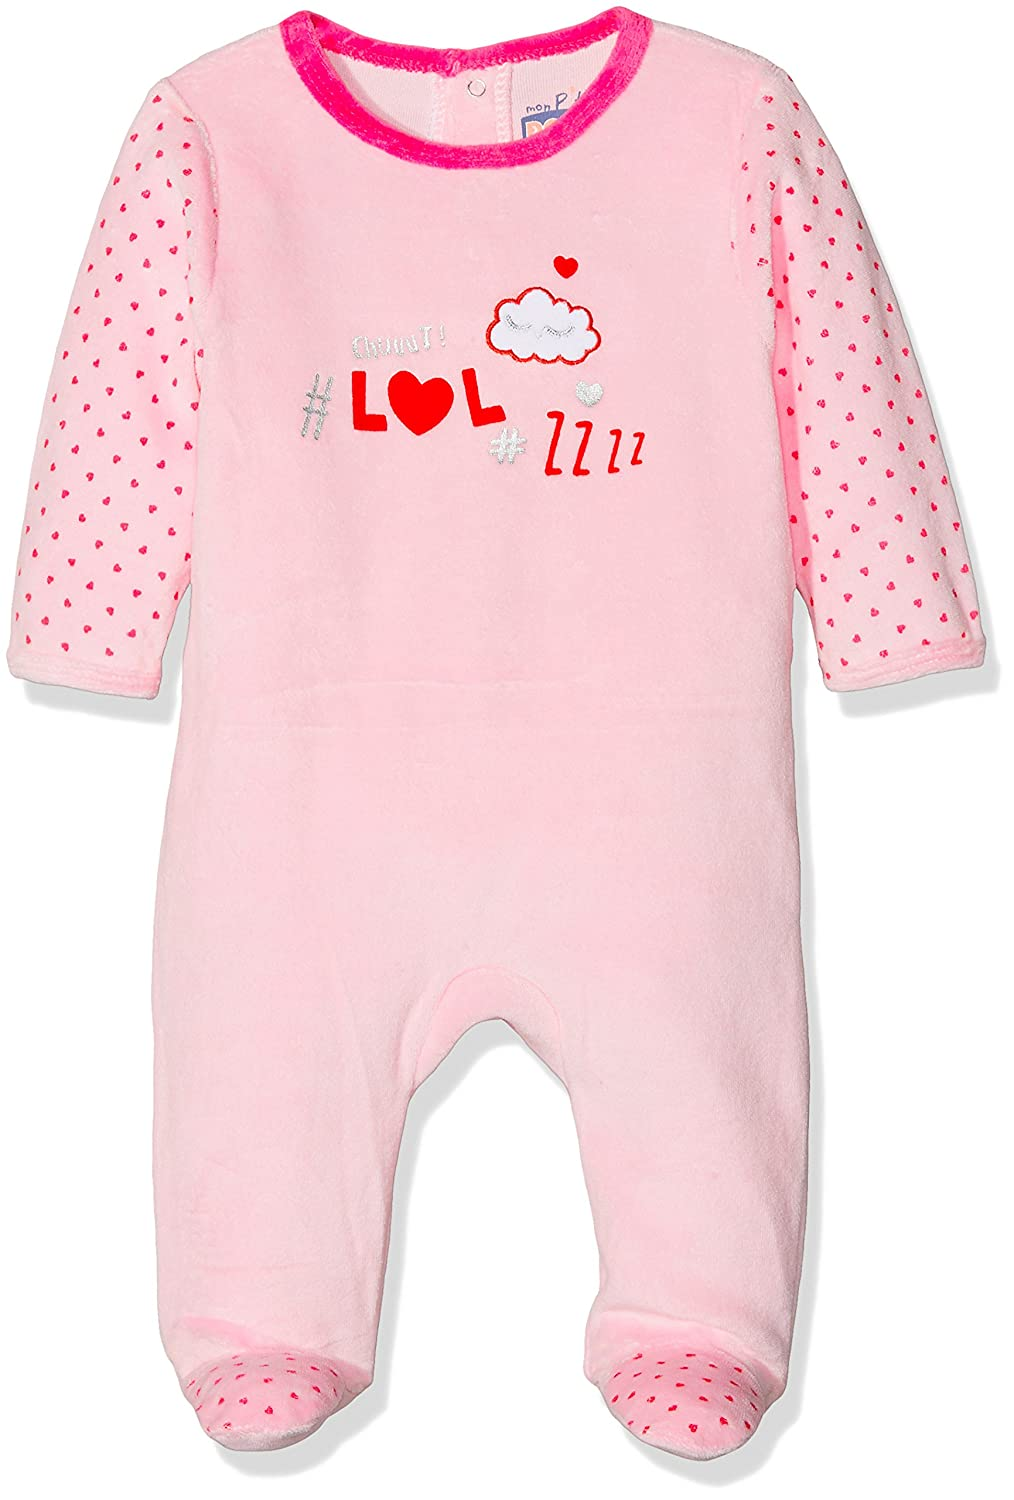 Dodo Homewear Baby Girls' Lfd.Sleep.Grv Onesie